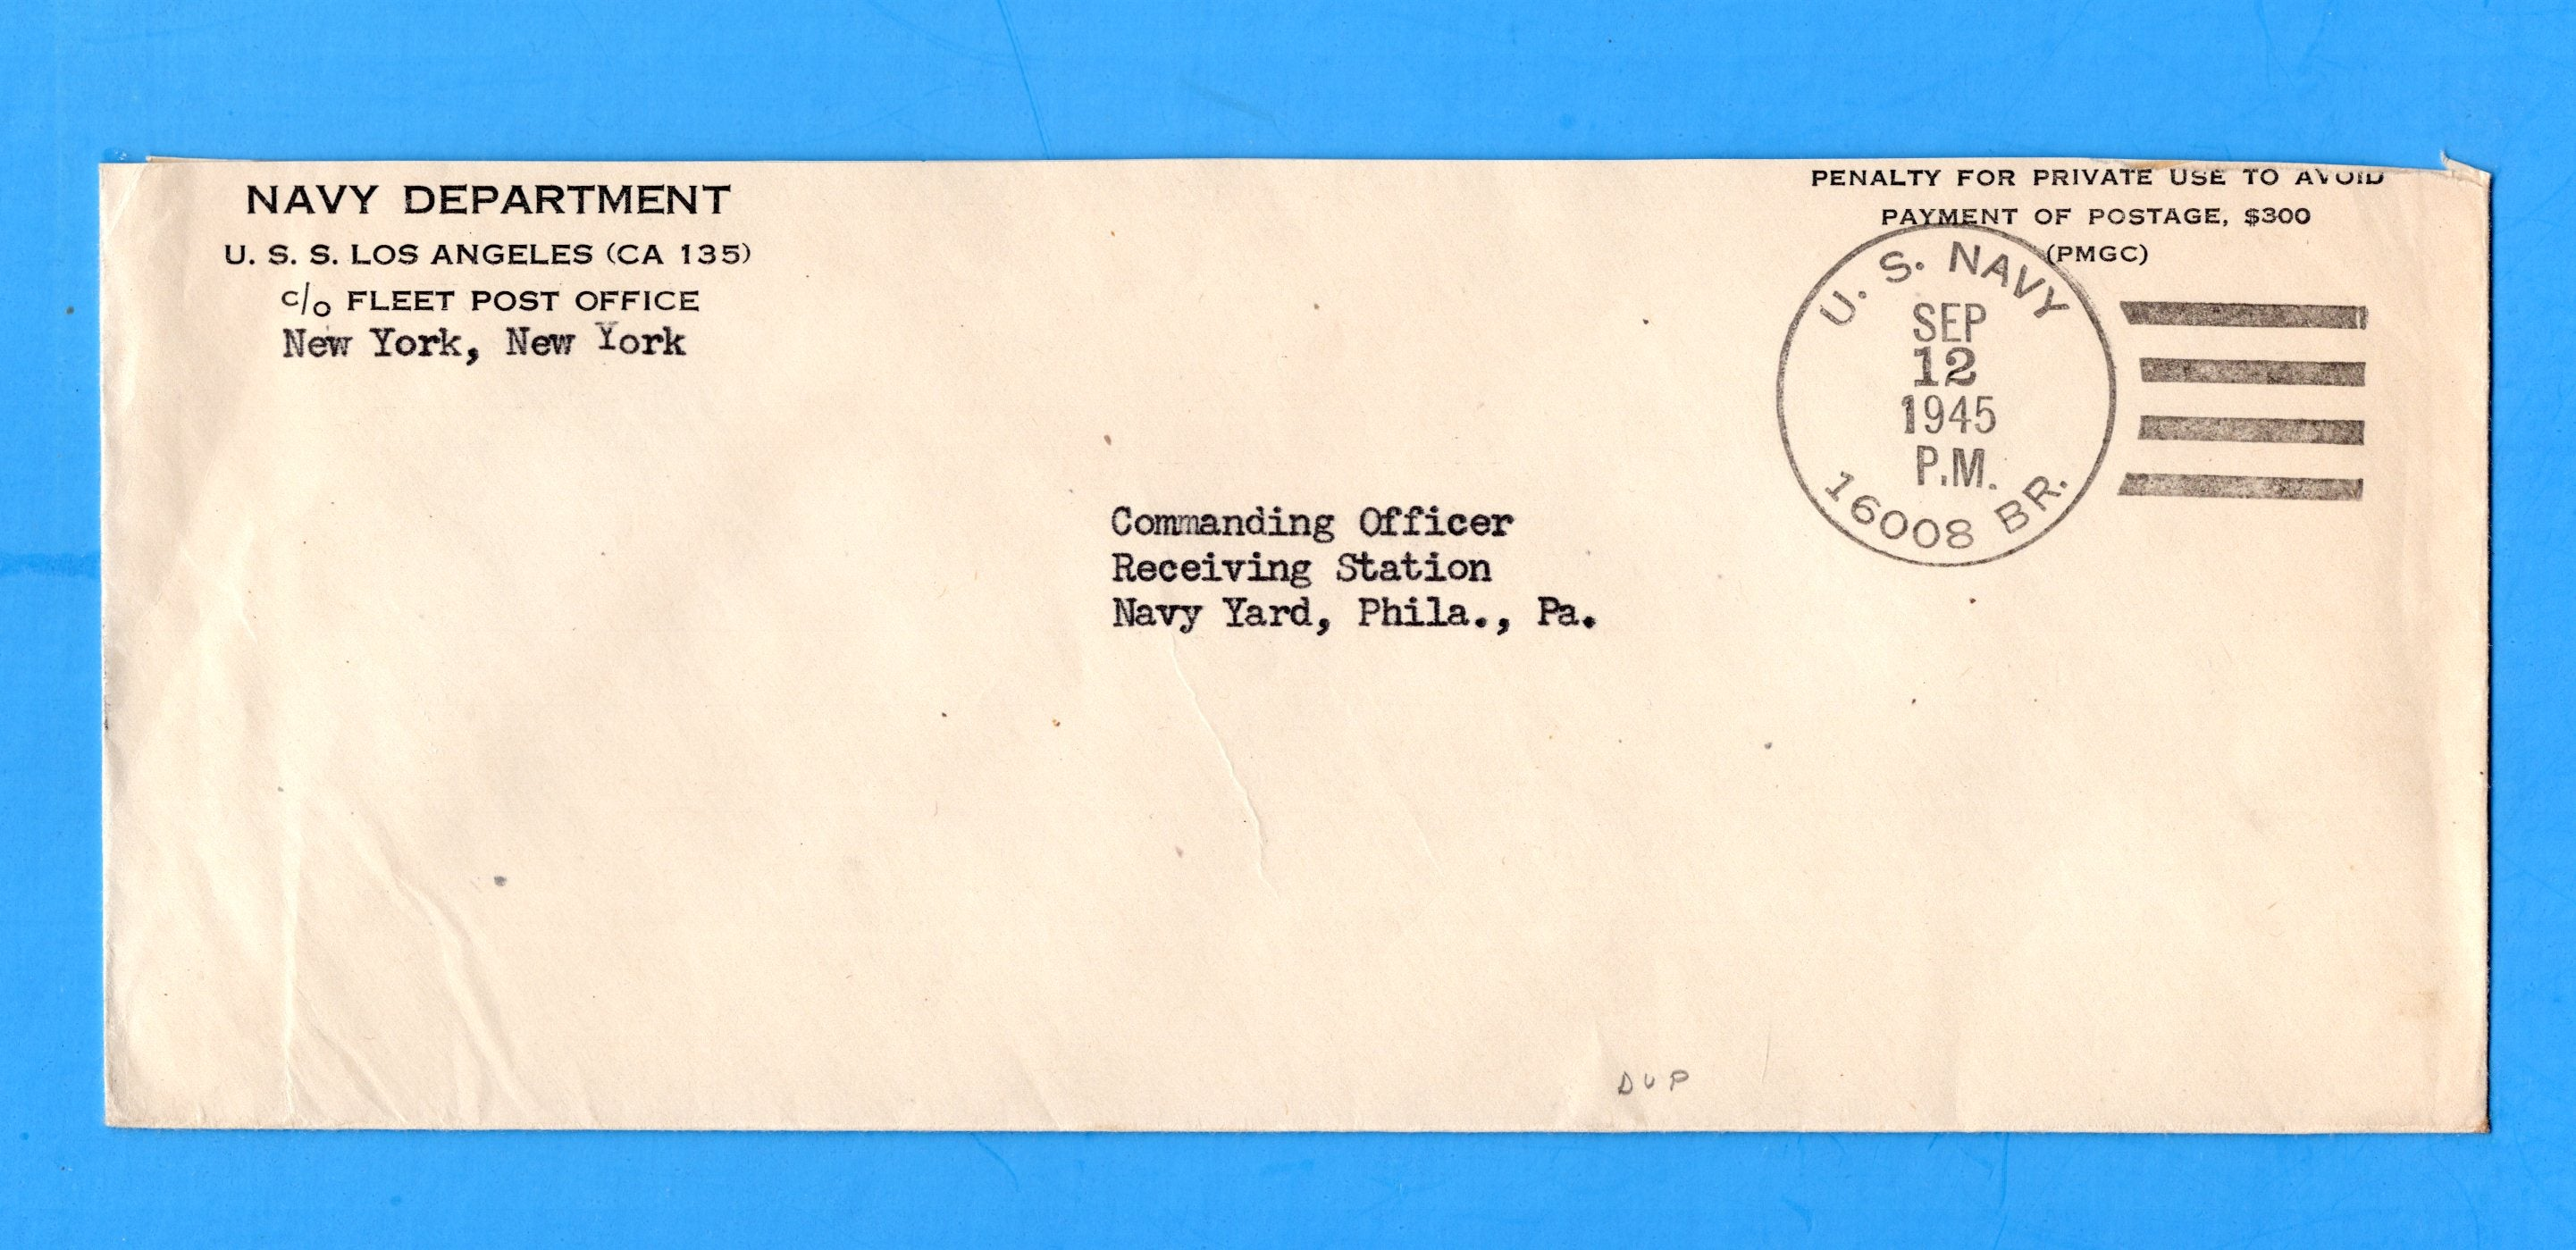 USS Los Angeles CA-135 16008 BR. Navy Department Official Censored Mail September 12, 1945